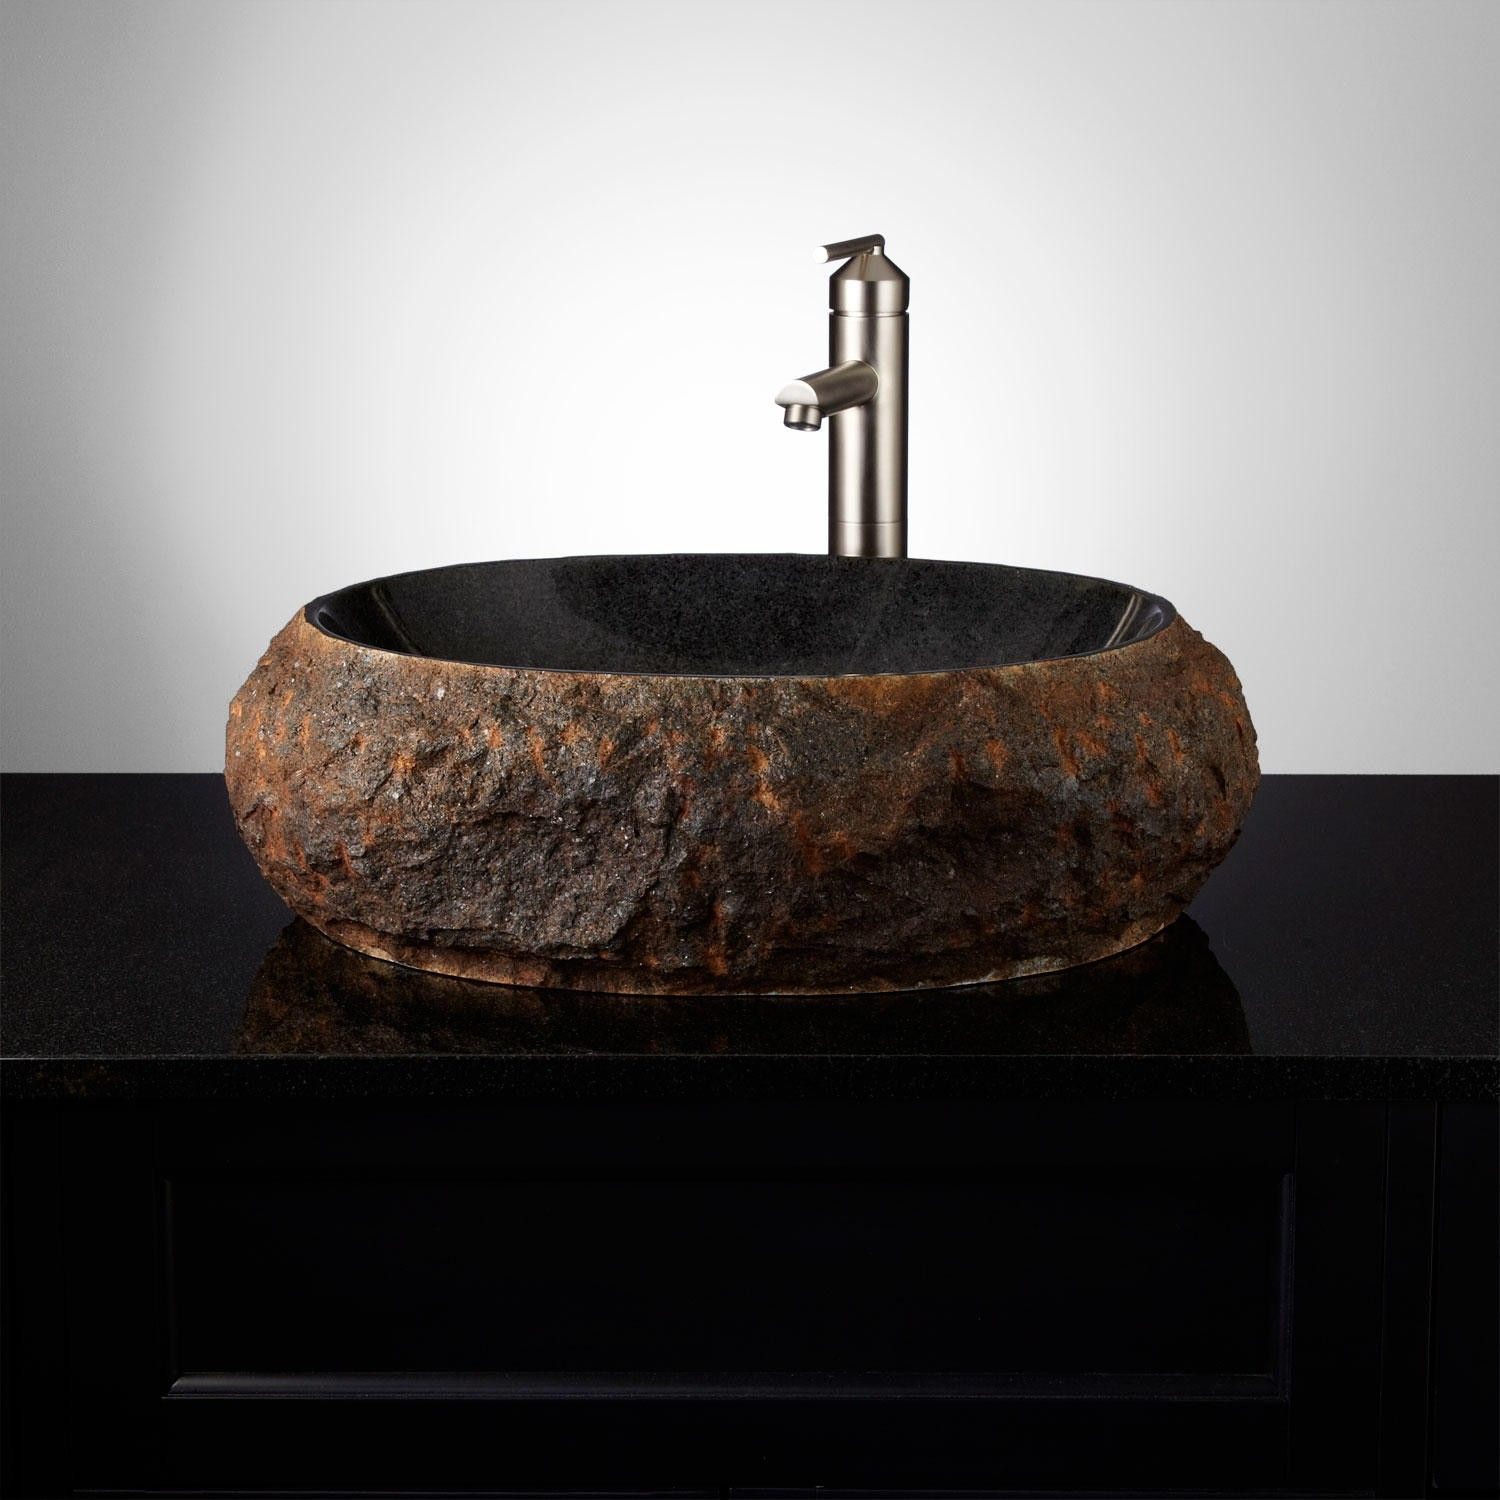 Ridge Natural Stone Vessel Sink Vessel Sink and Natural Stones